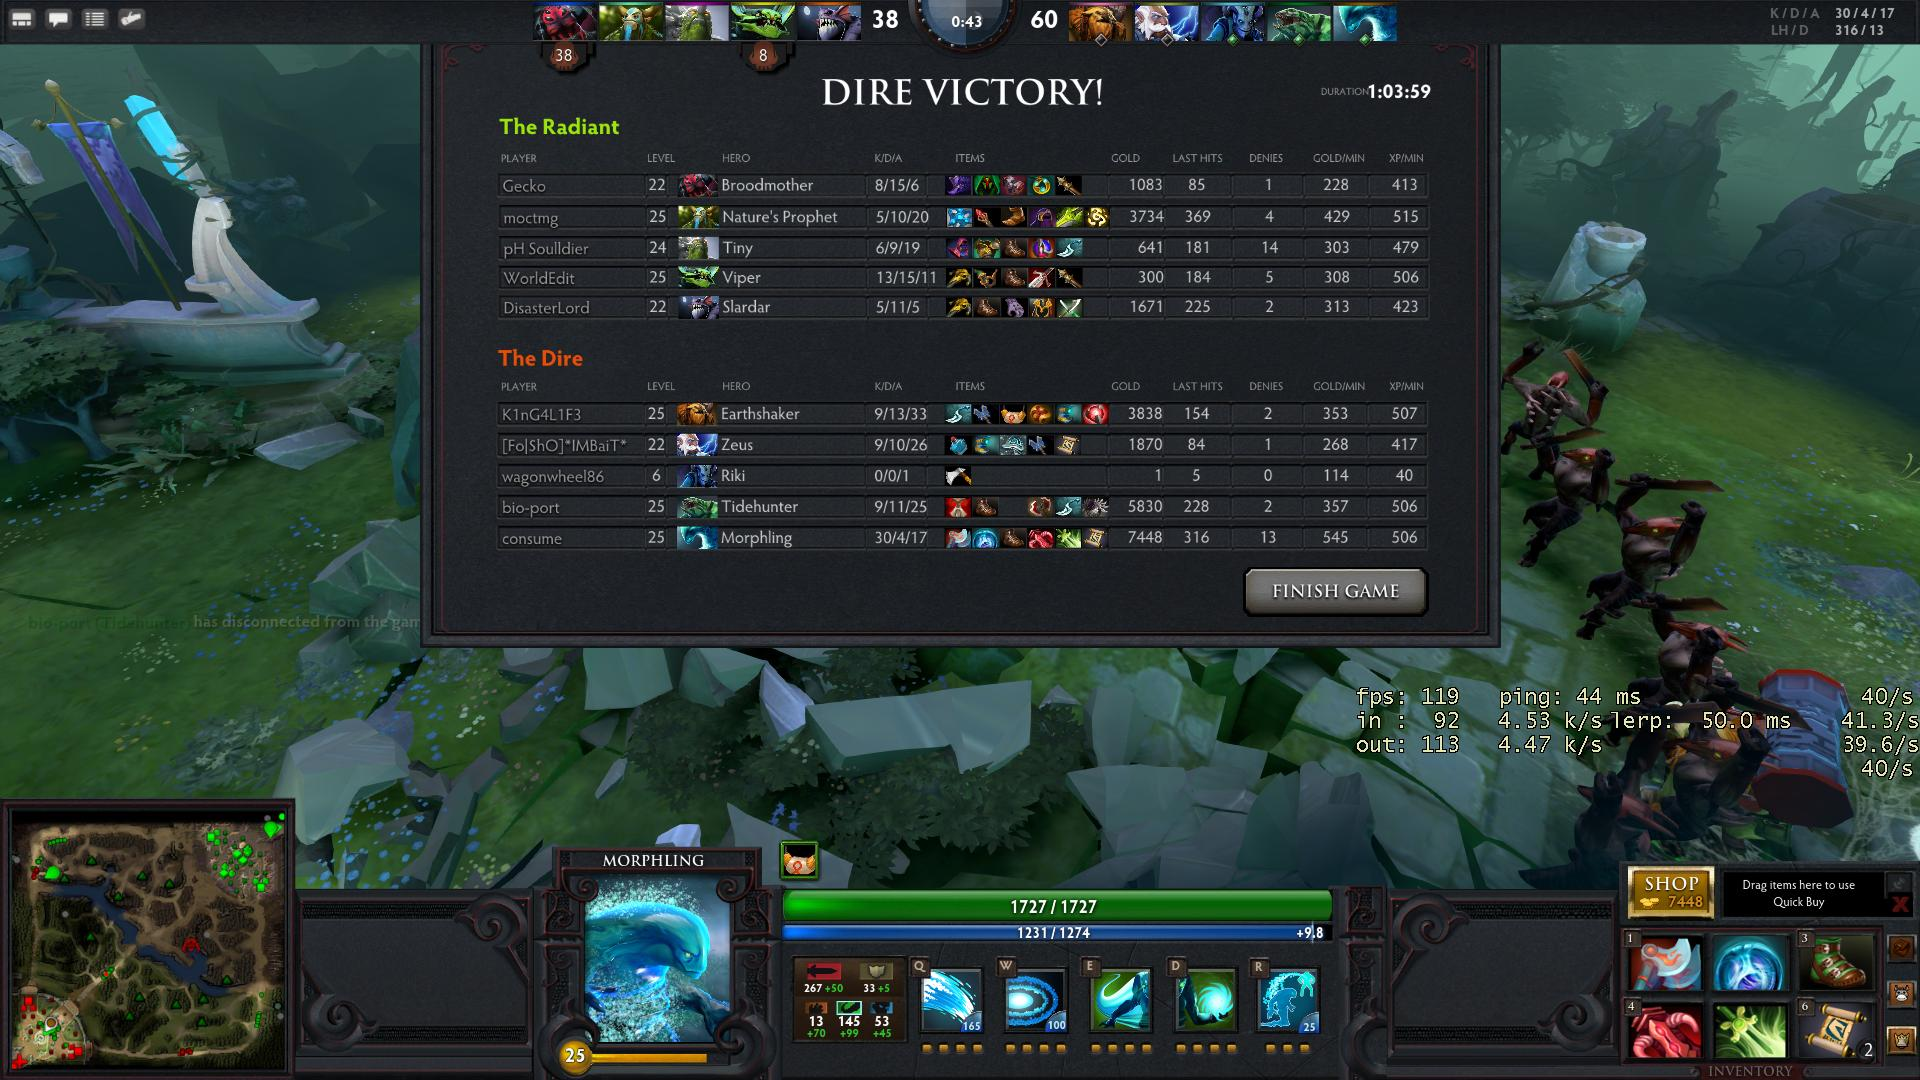 dota 2 hard carry for newer players articles team dignitas